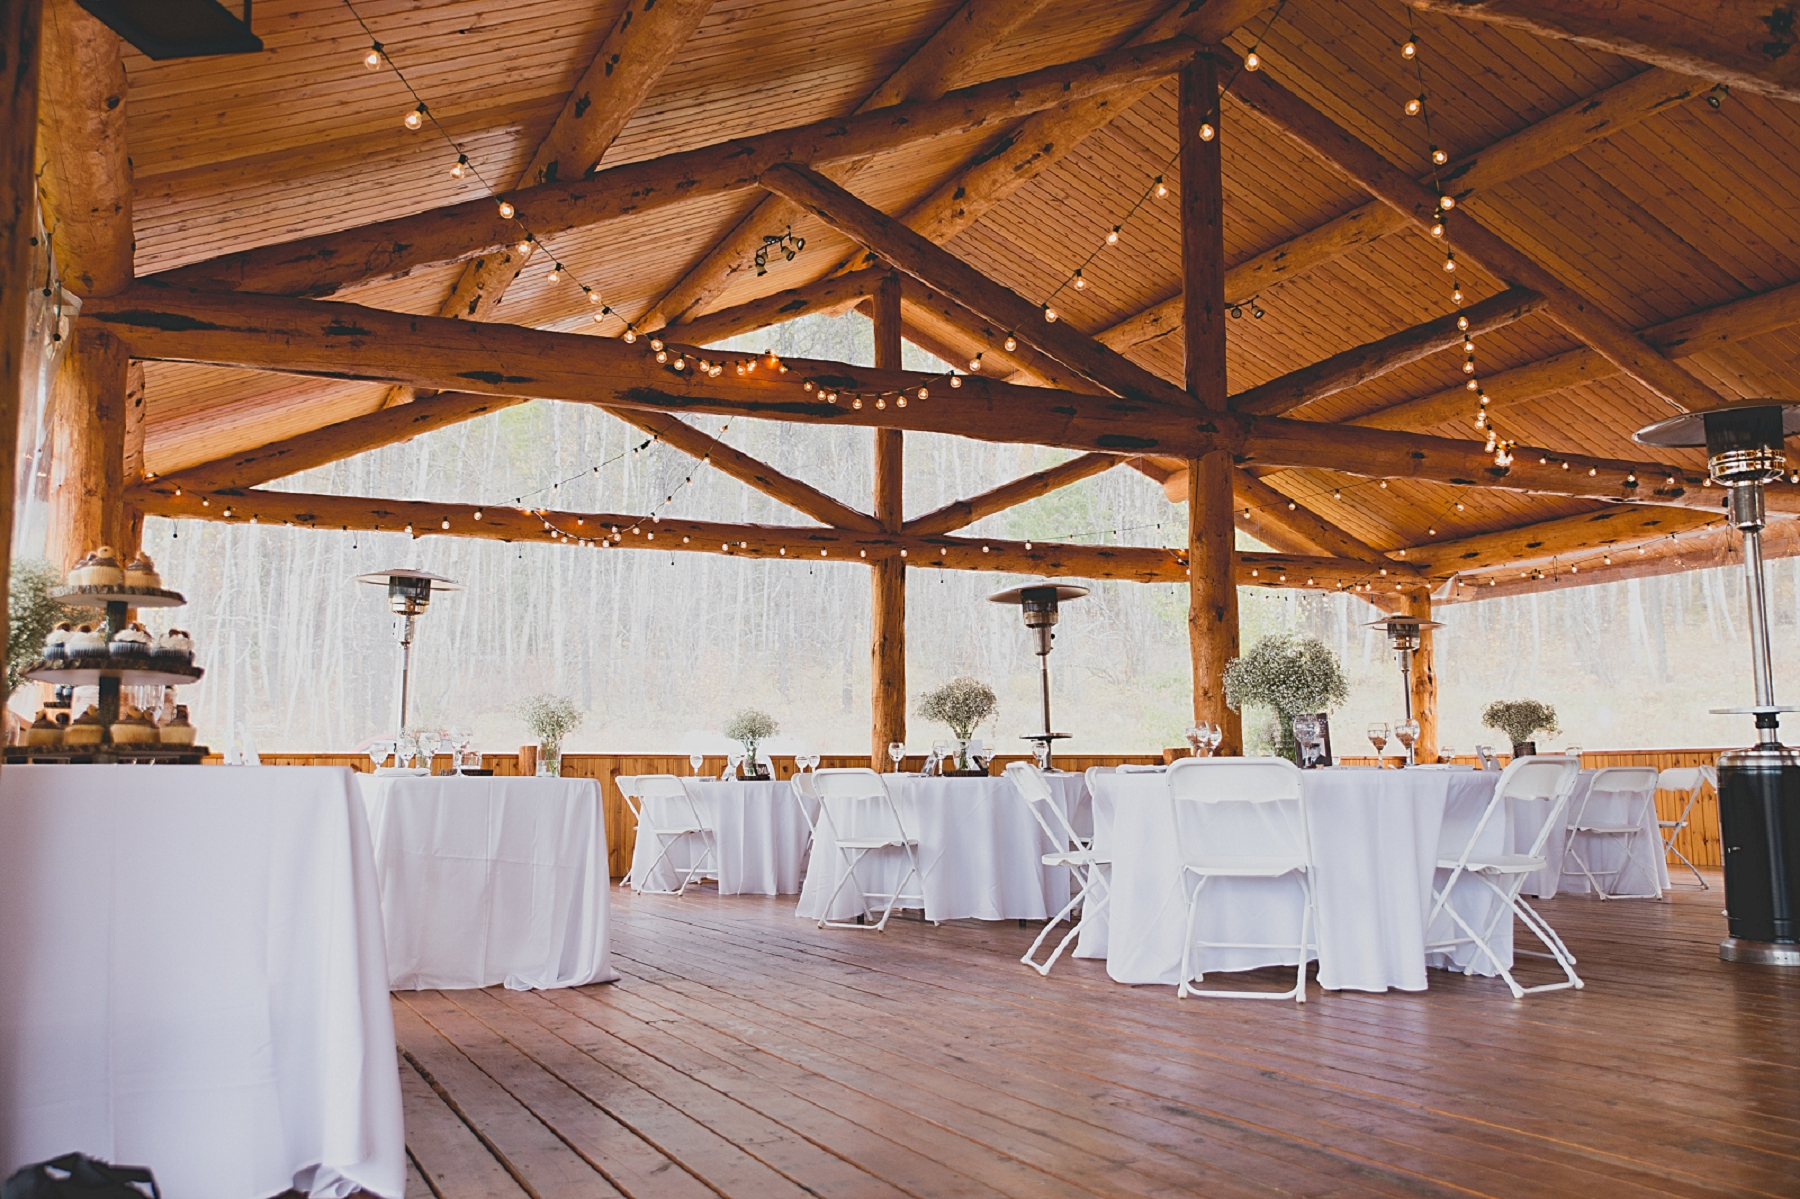 Jennifer_Mooney_photo_glacier_outdoor_center_wedding_montana_fall_elegant_rustic_romantic-68.jpg